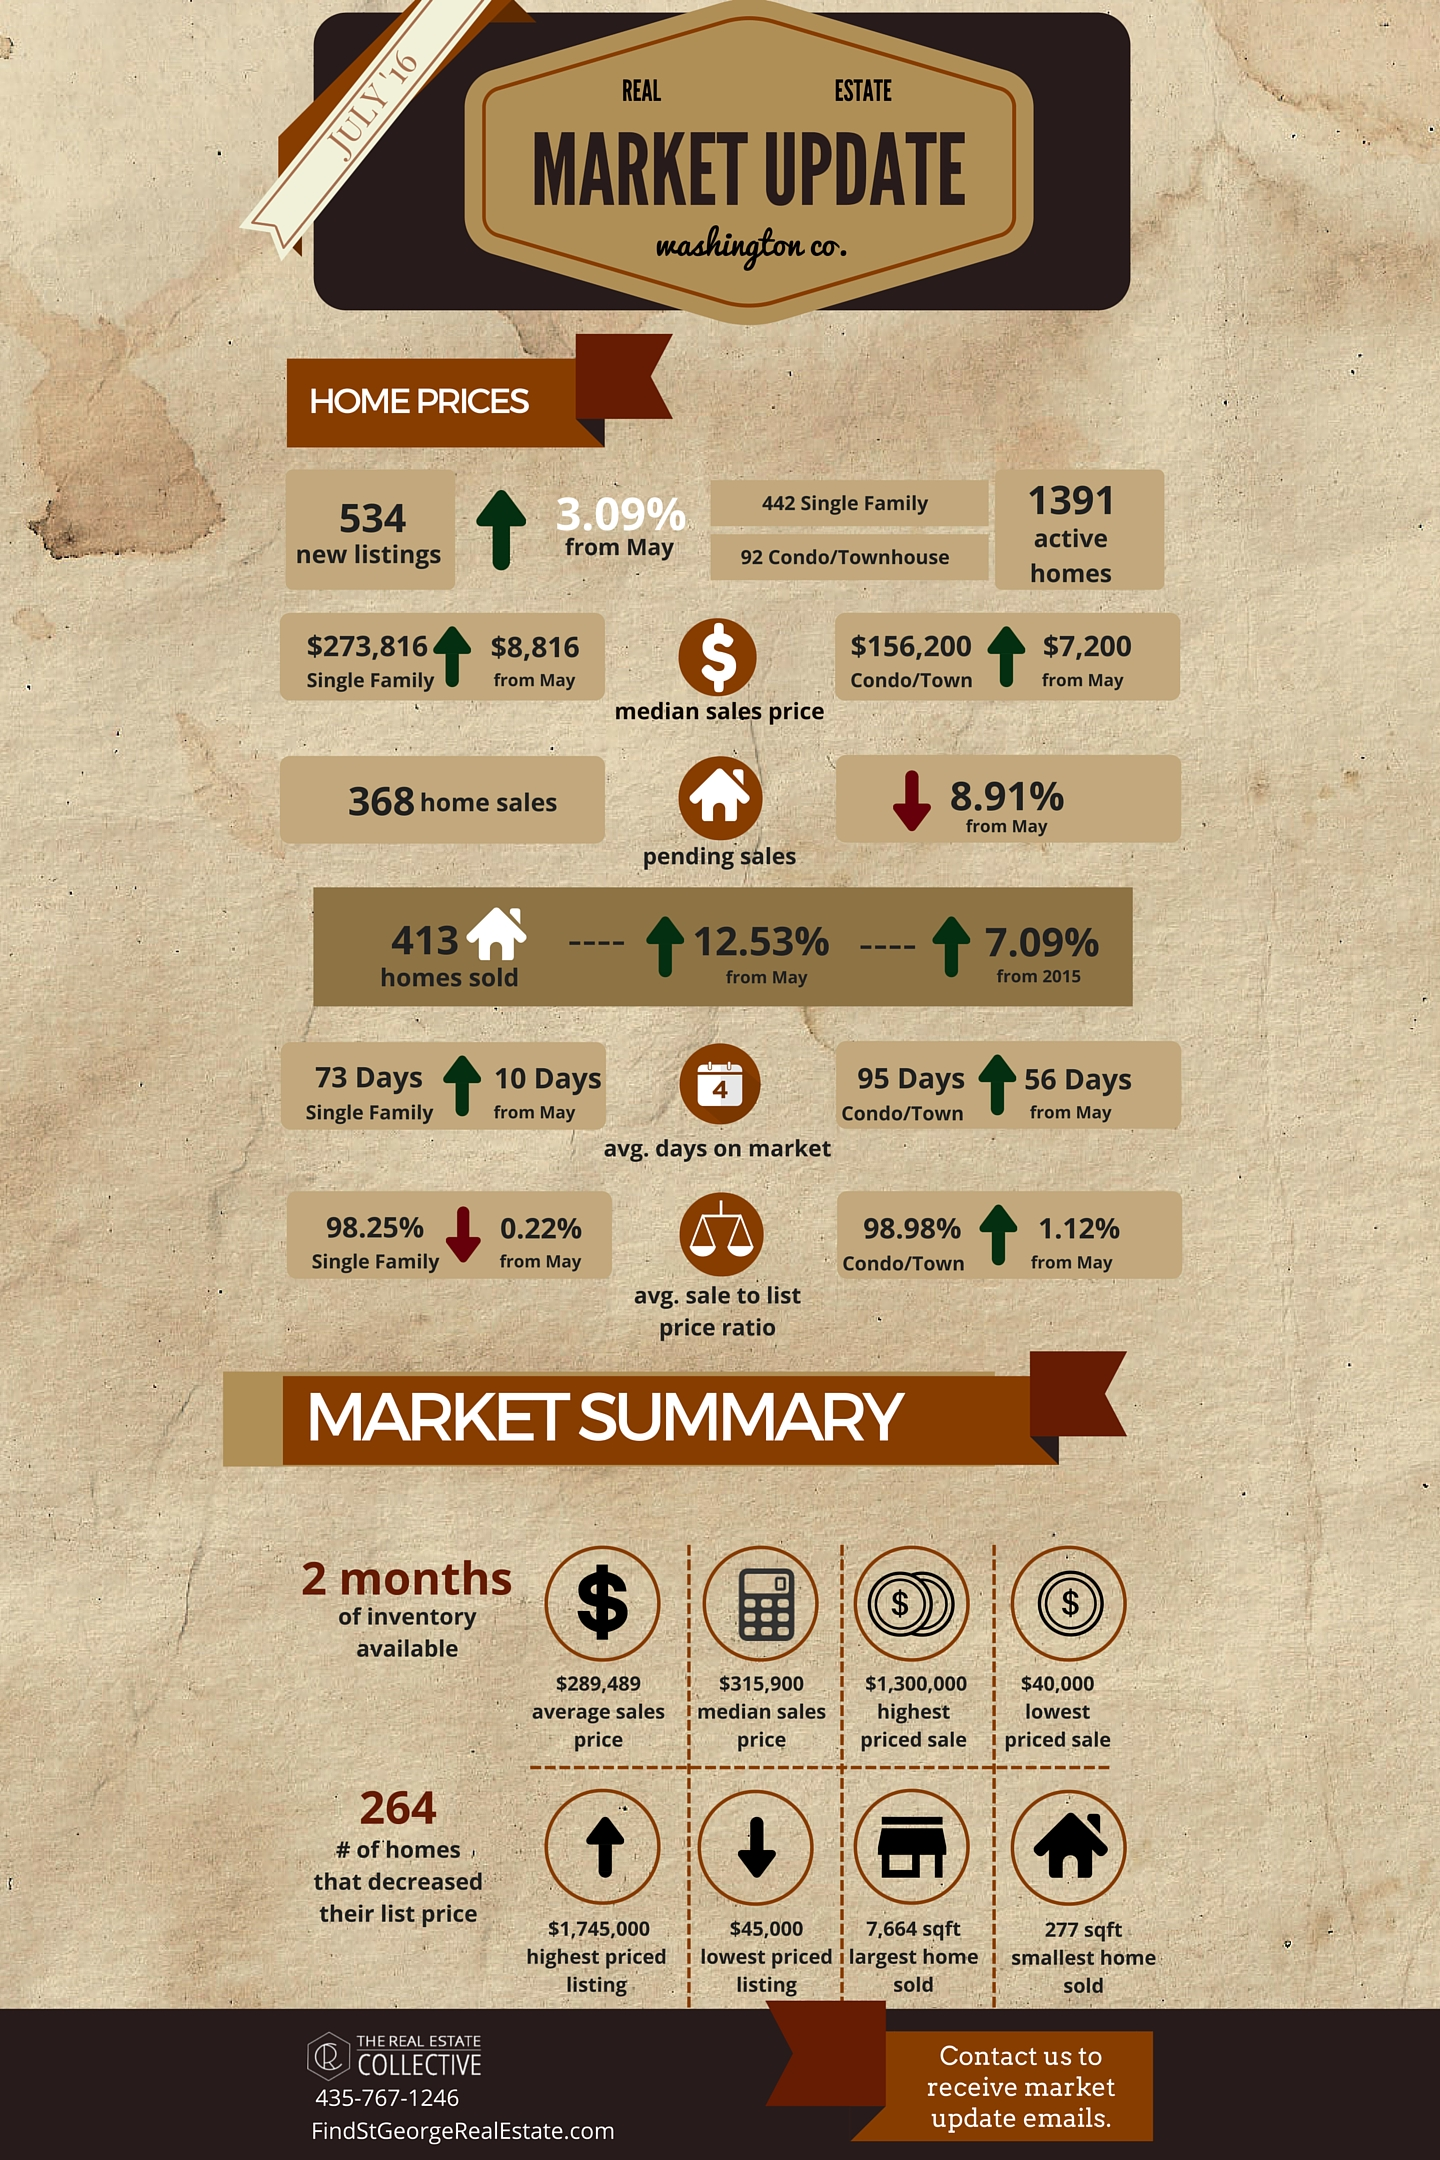 July 2016 Market Update Infographic